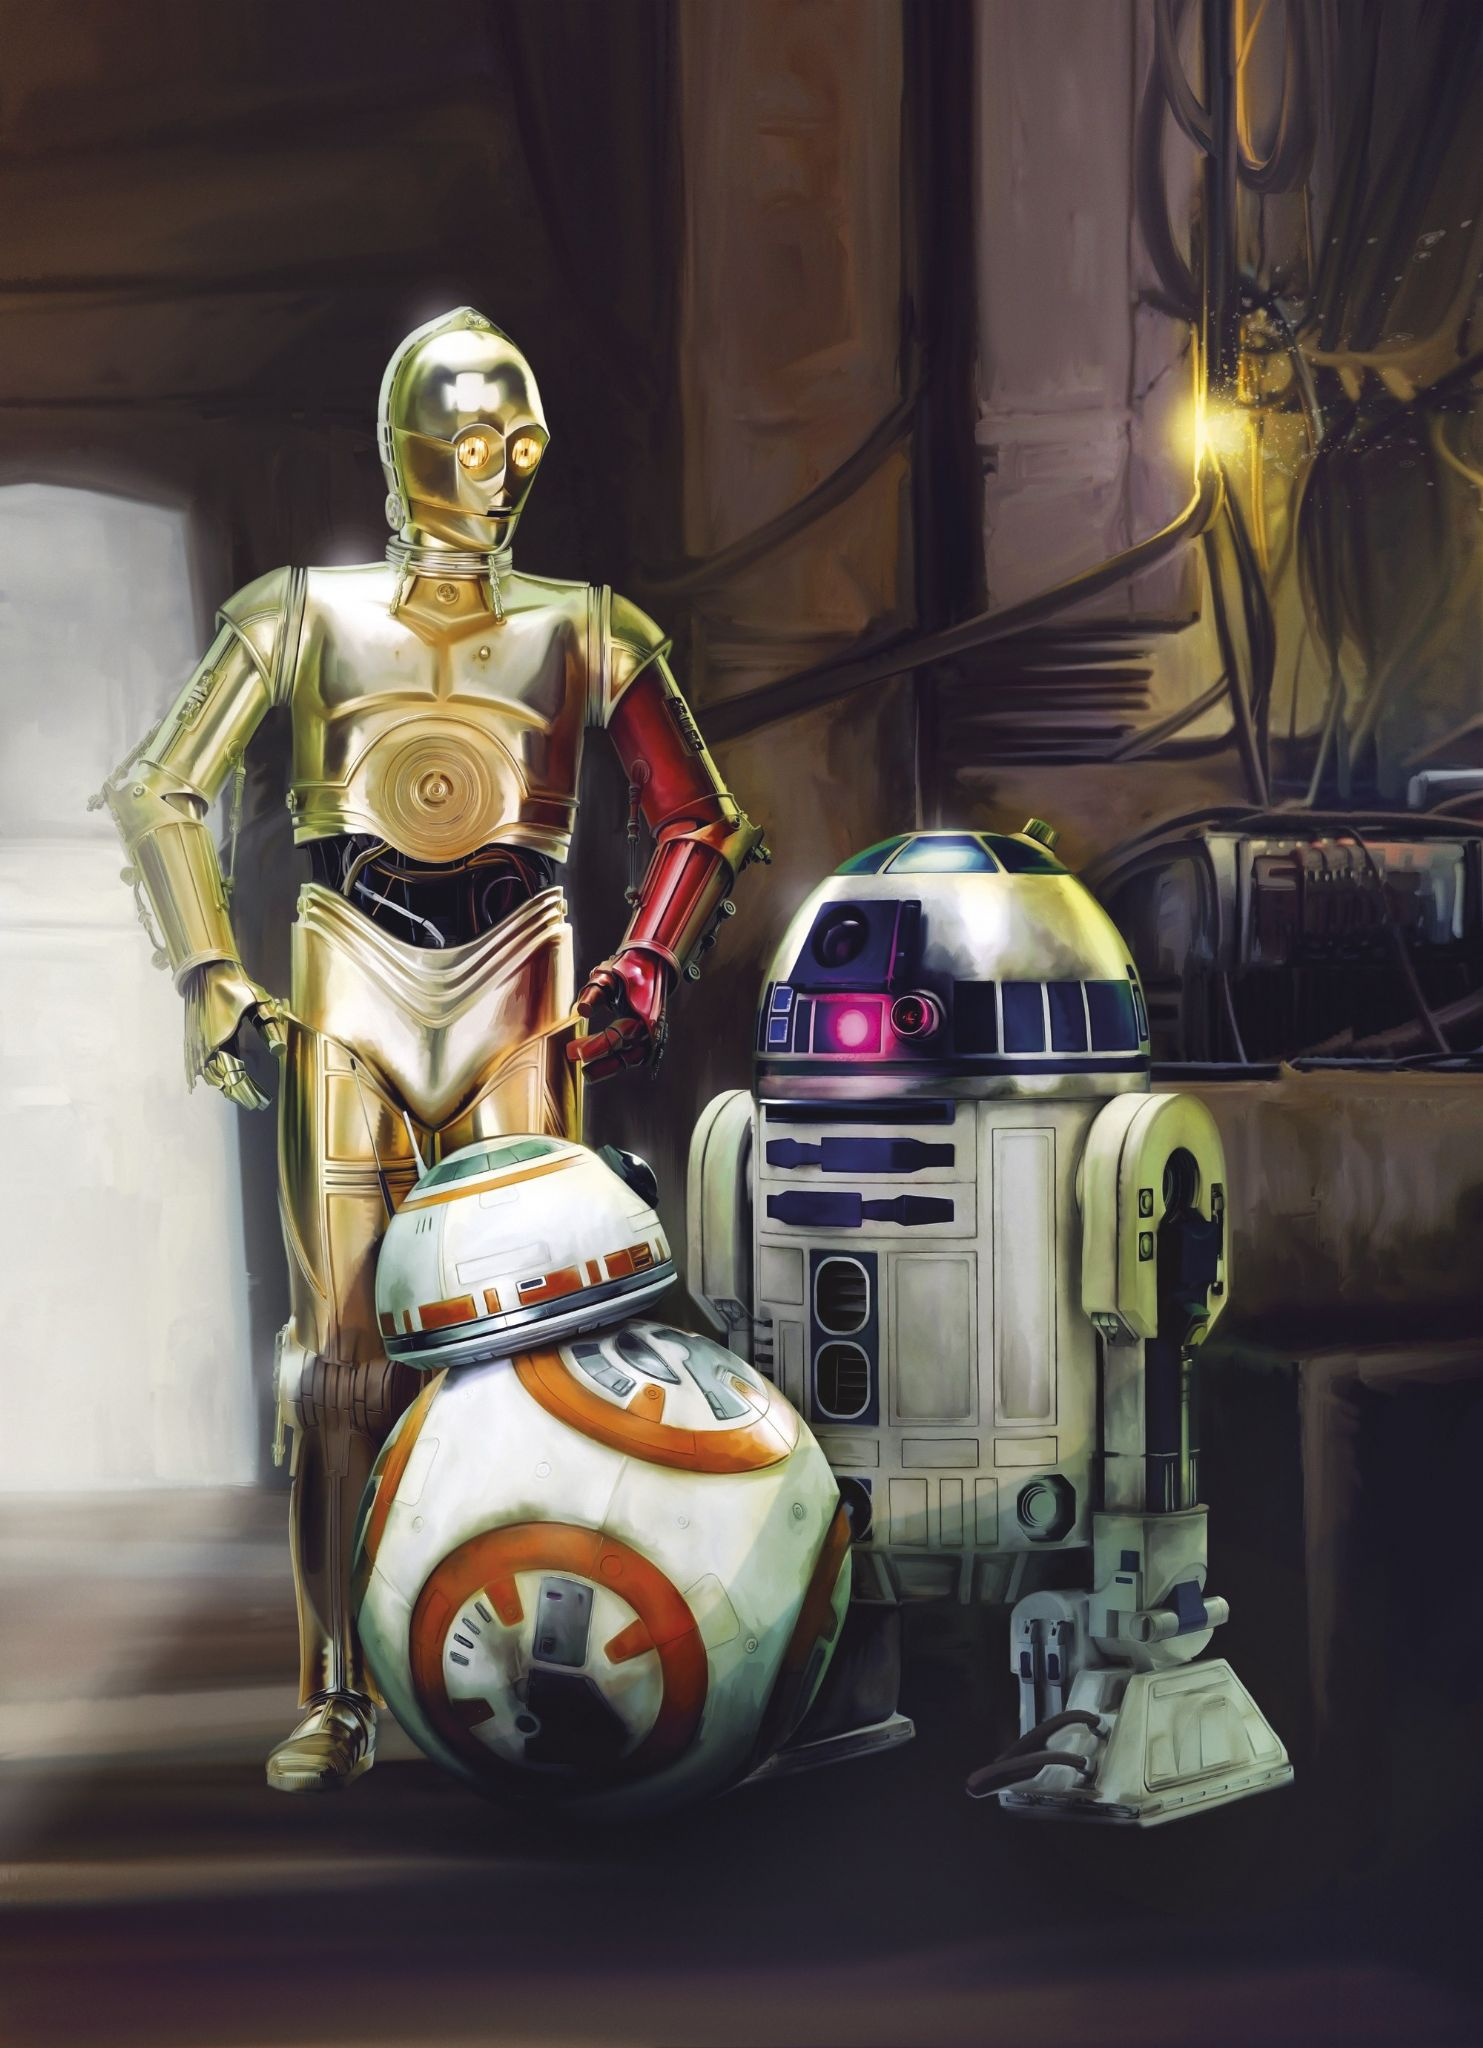 Star Wars Droid Wallpaper Posted By Ryan Anderson